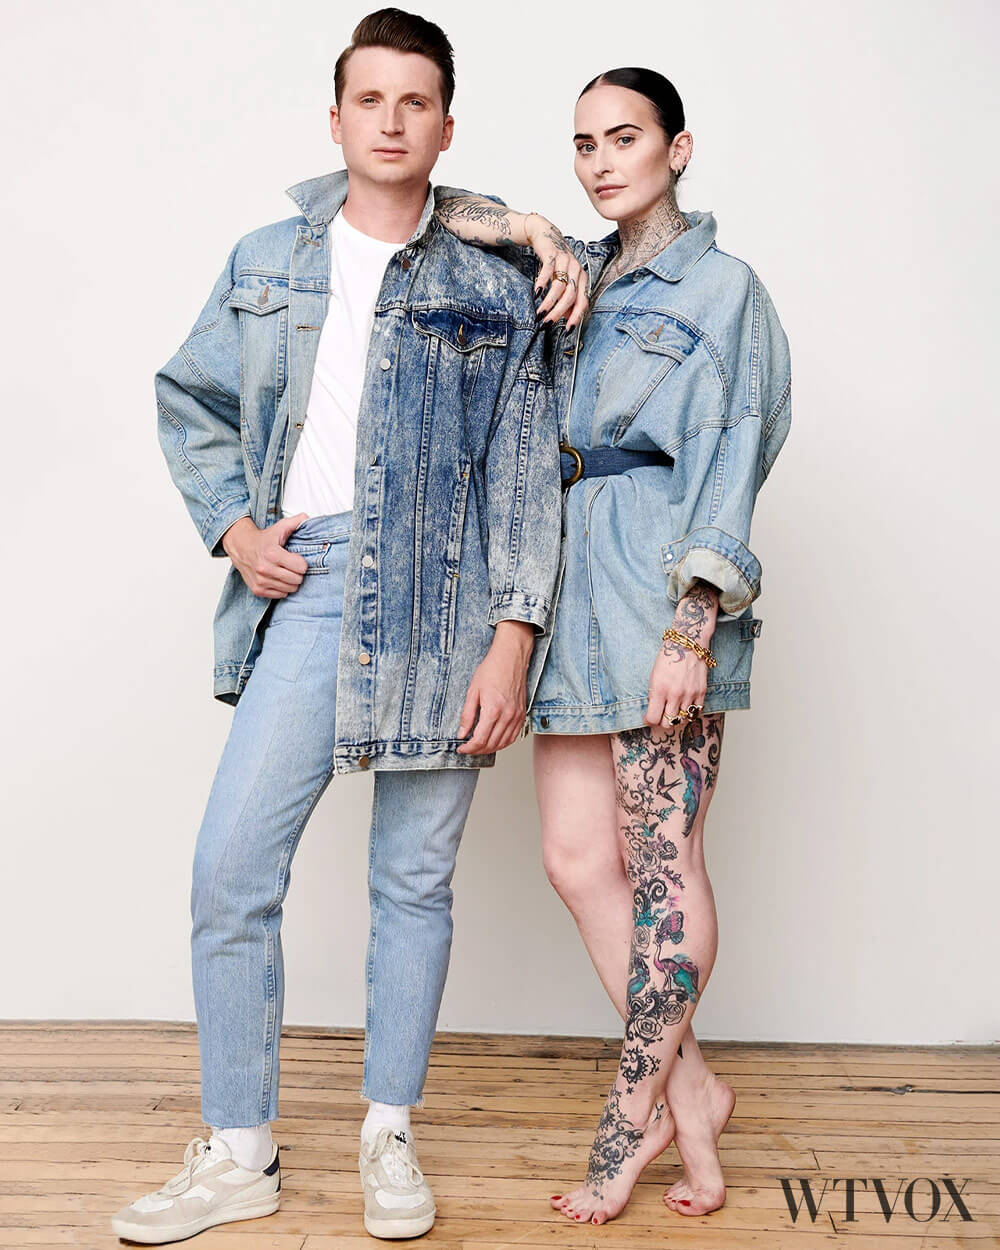 E.L.V. DENIM 2020 collection